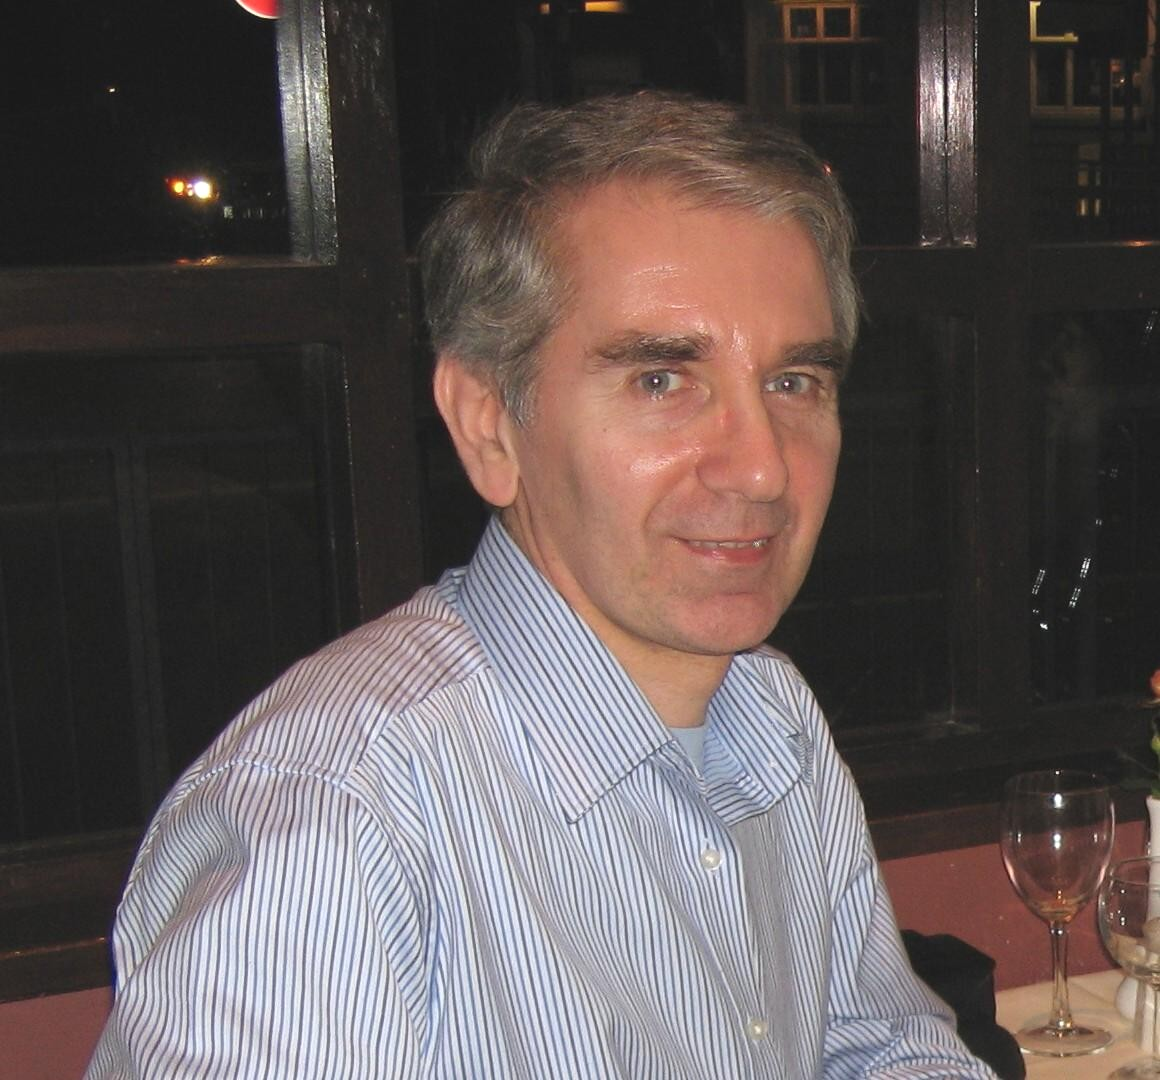 Author Michael Fill